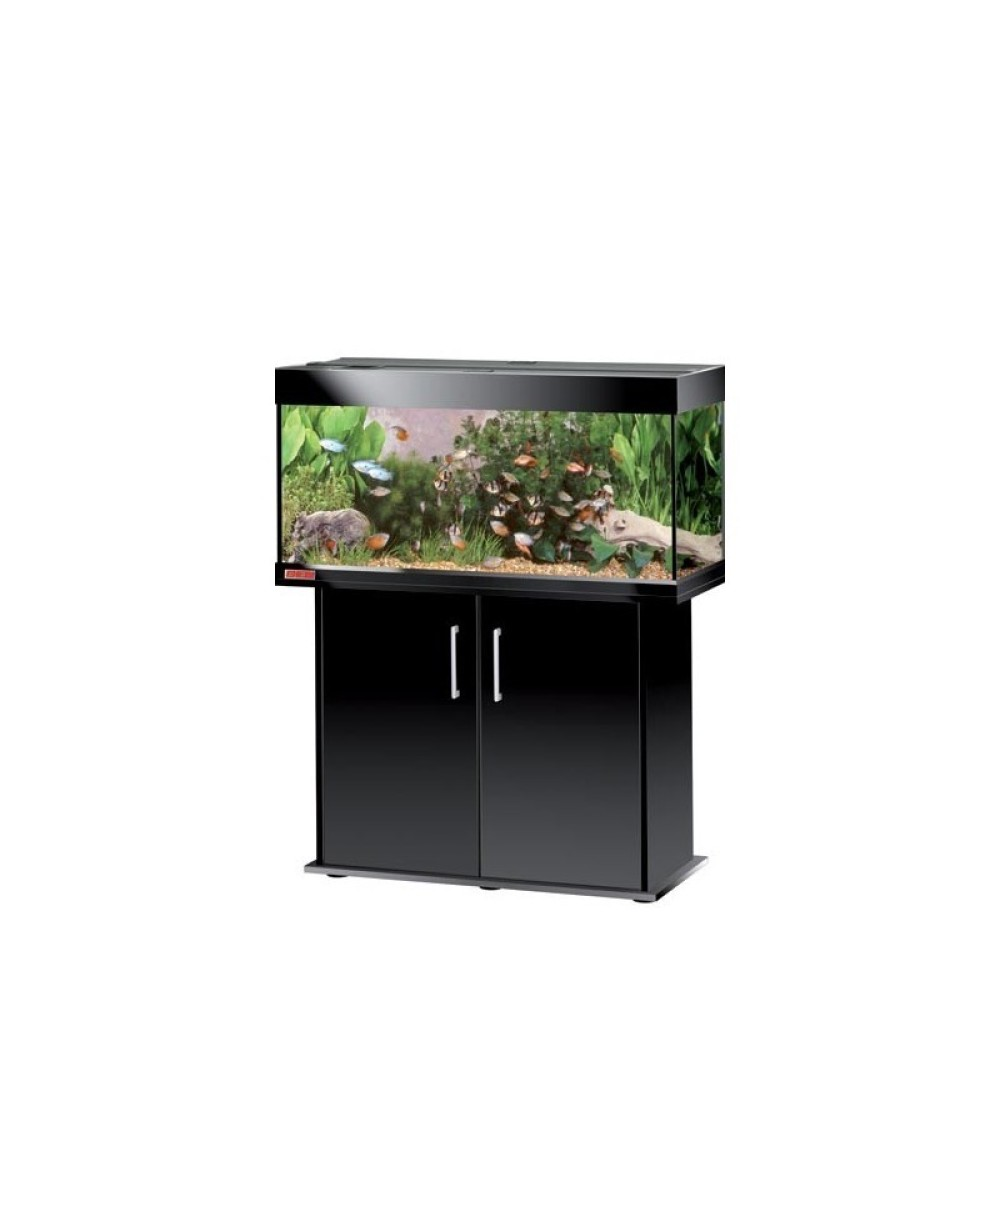 acuario eheim vivaline 180 tropican mascotas. Black Bedroom Furniture Sets. Home Design Ideas